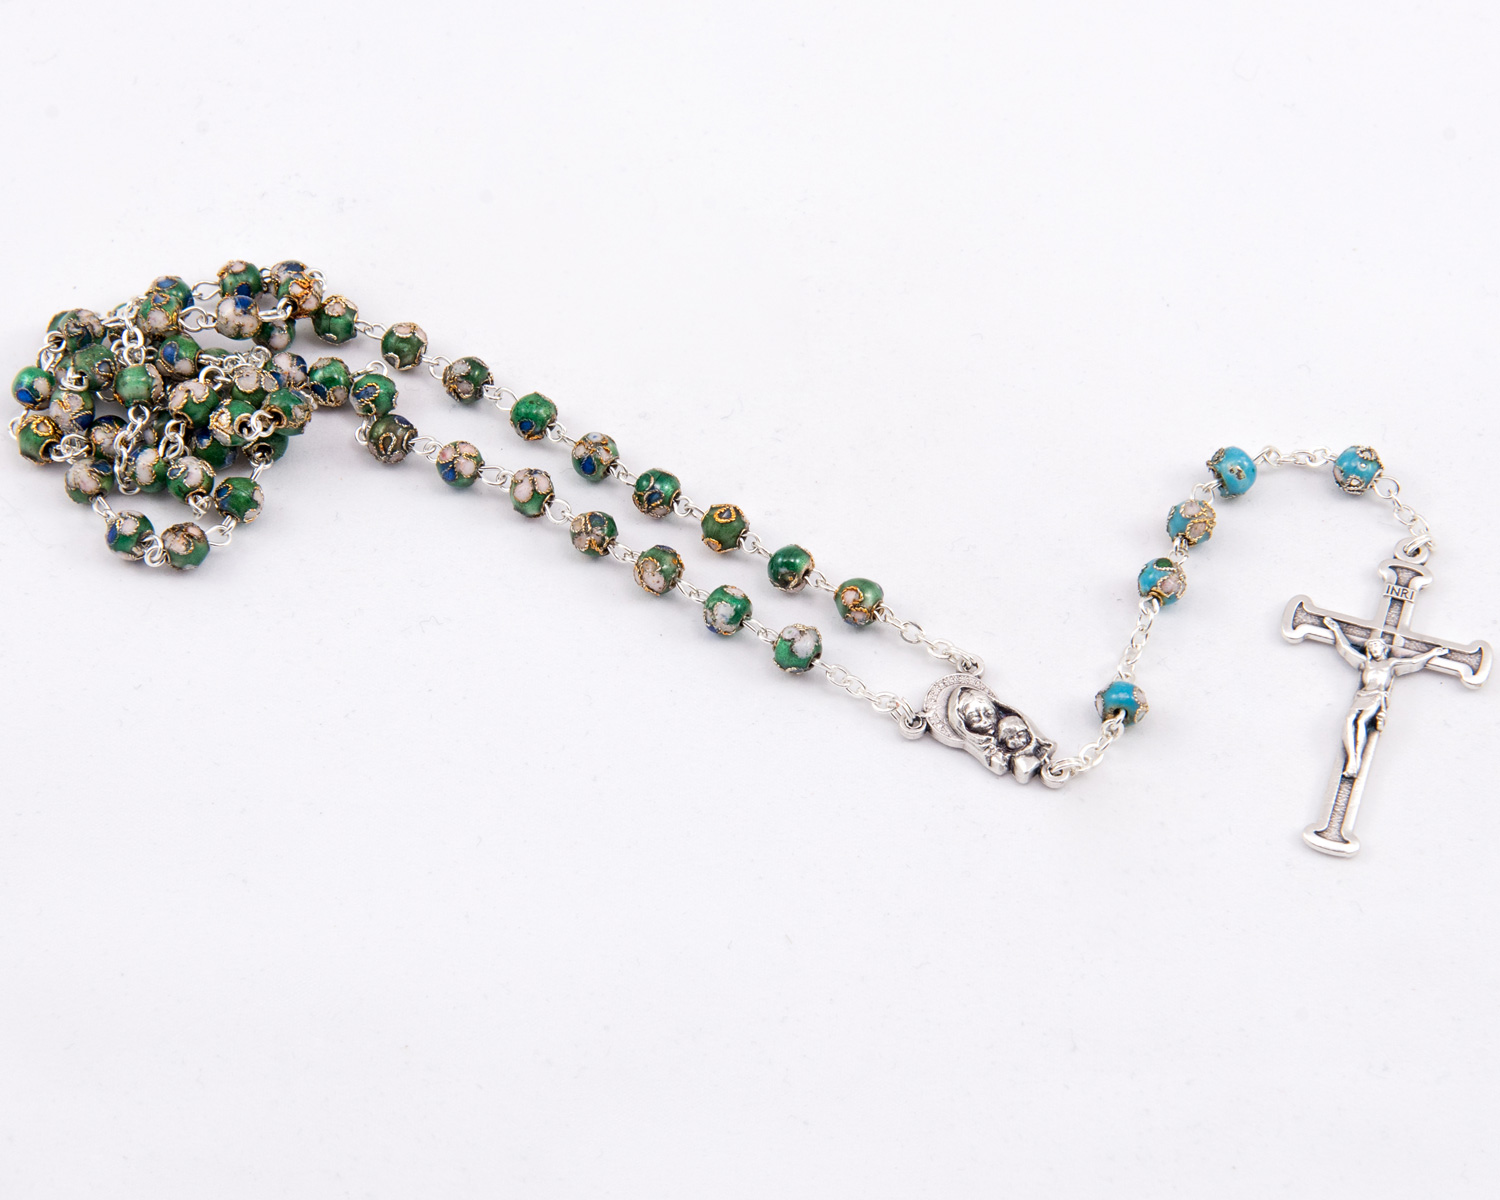 Green Cloisonné Rosary - 6mm beads